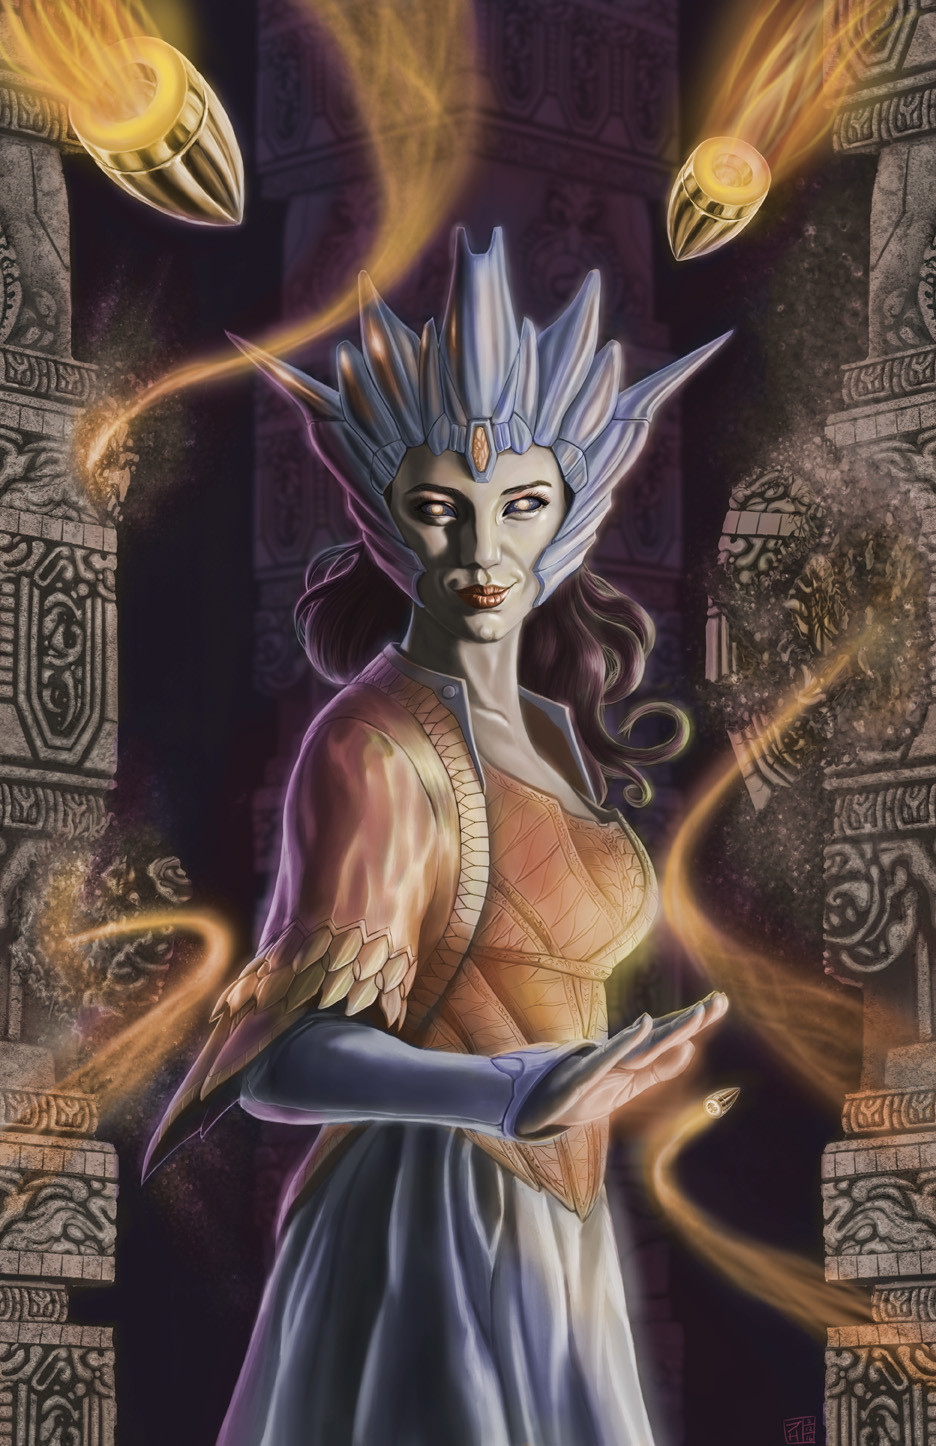 The 5th (though not chronologically) of the Lanesra series, the villain of the story, the as-yet-unnamed Evil Space Queen.